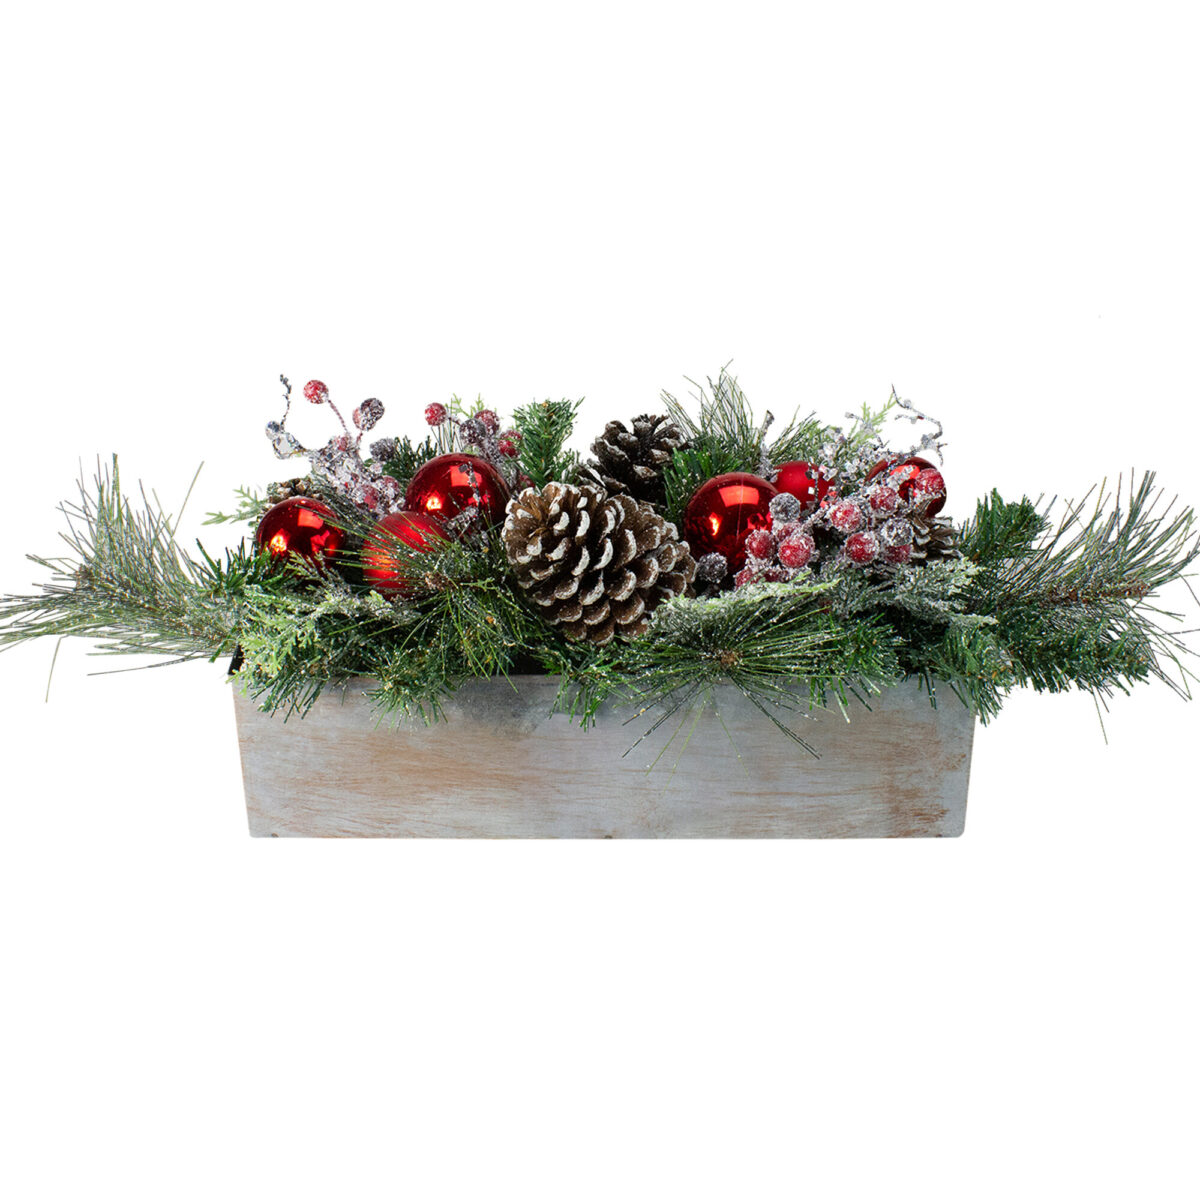 diy-christmas-decorations-with-pine-cones-6